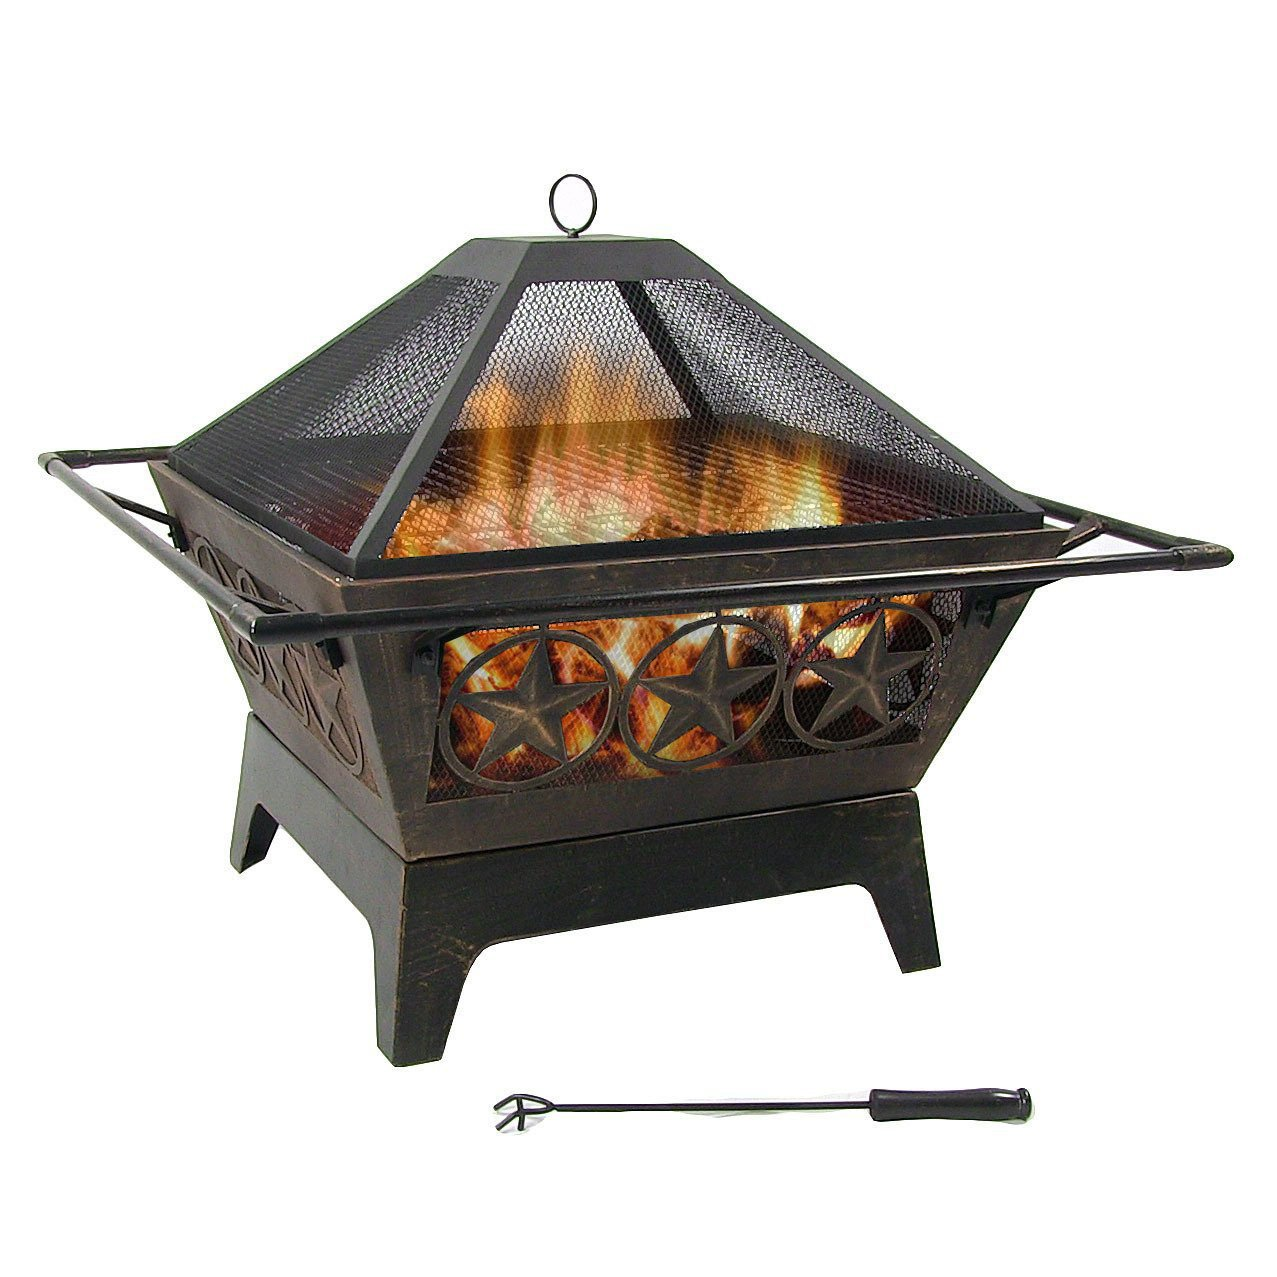 Northern Galaxy Square Wood-Burning Fire Pit, 32 Inch, with Cooking Grate and Spark Screen by Sunnydaze Decor